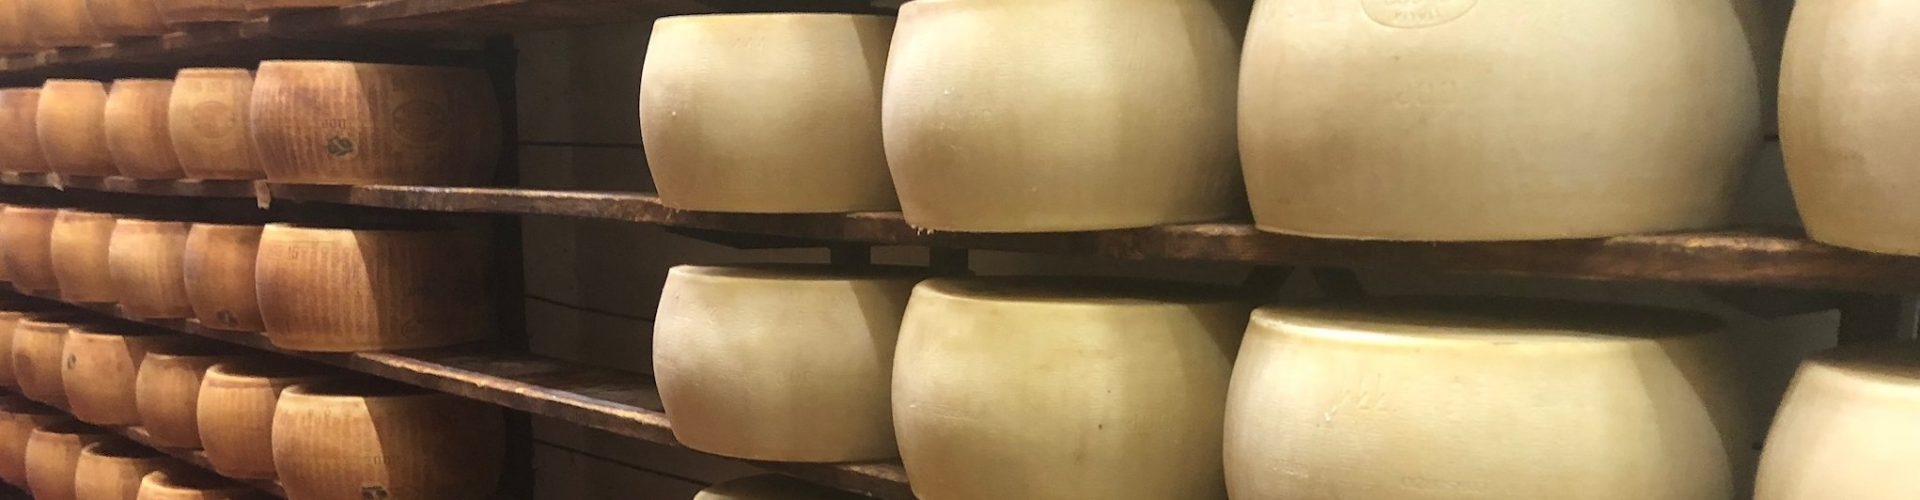 Take a bike tour in Emilia Romagna and visit Parmesan Cheese Makers